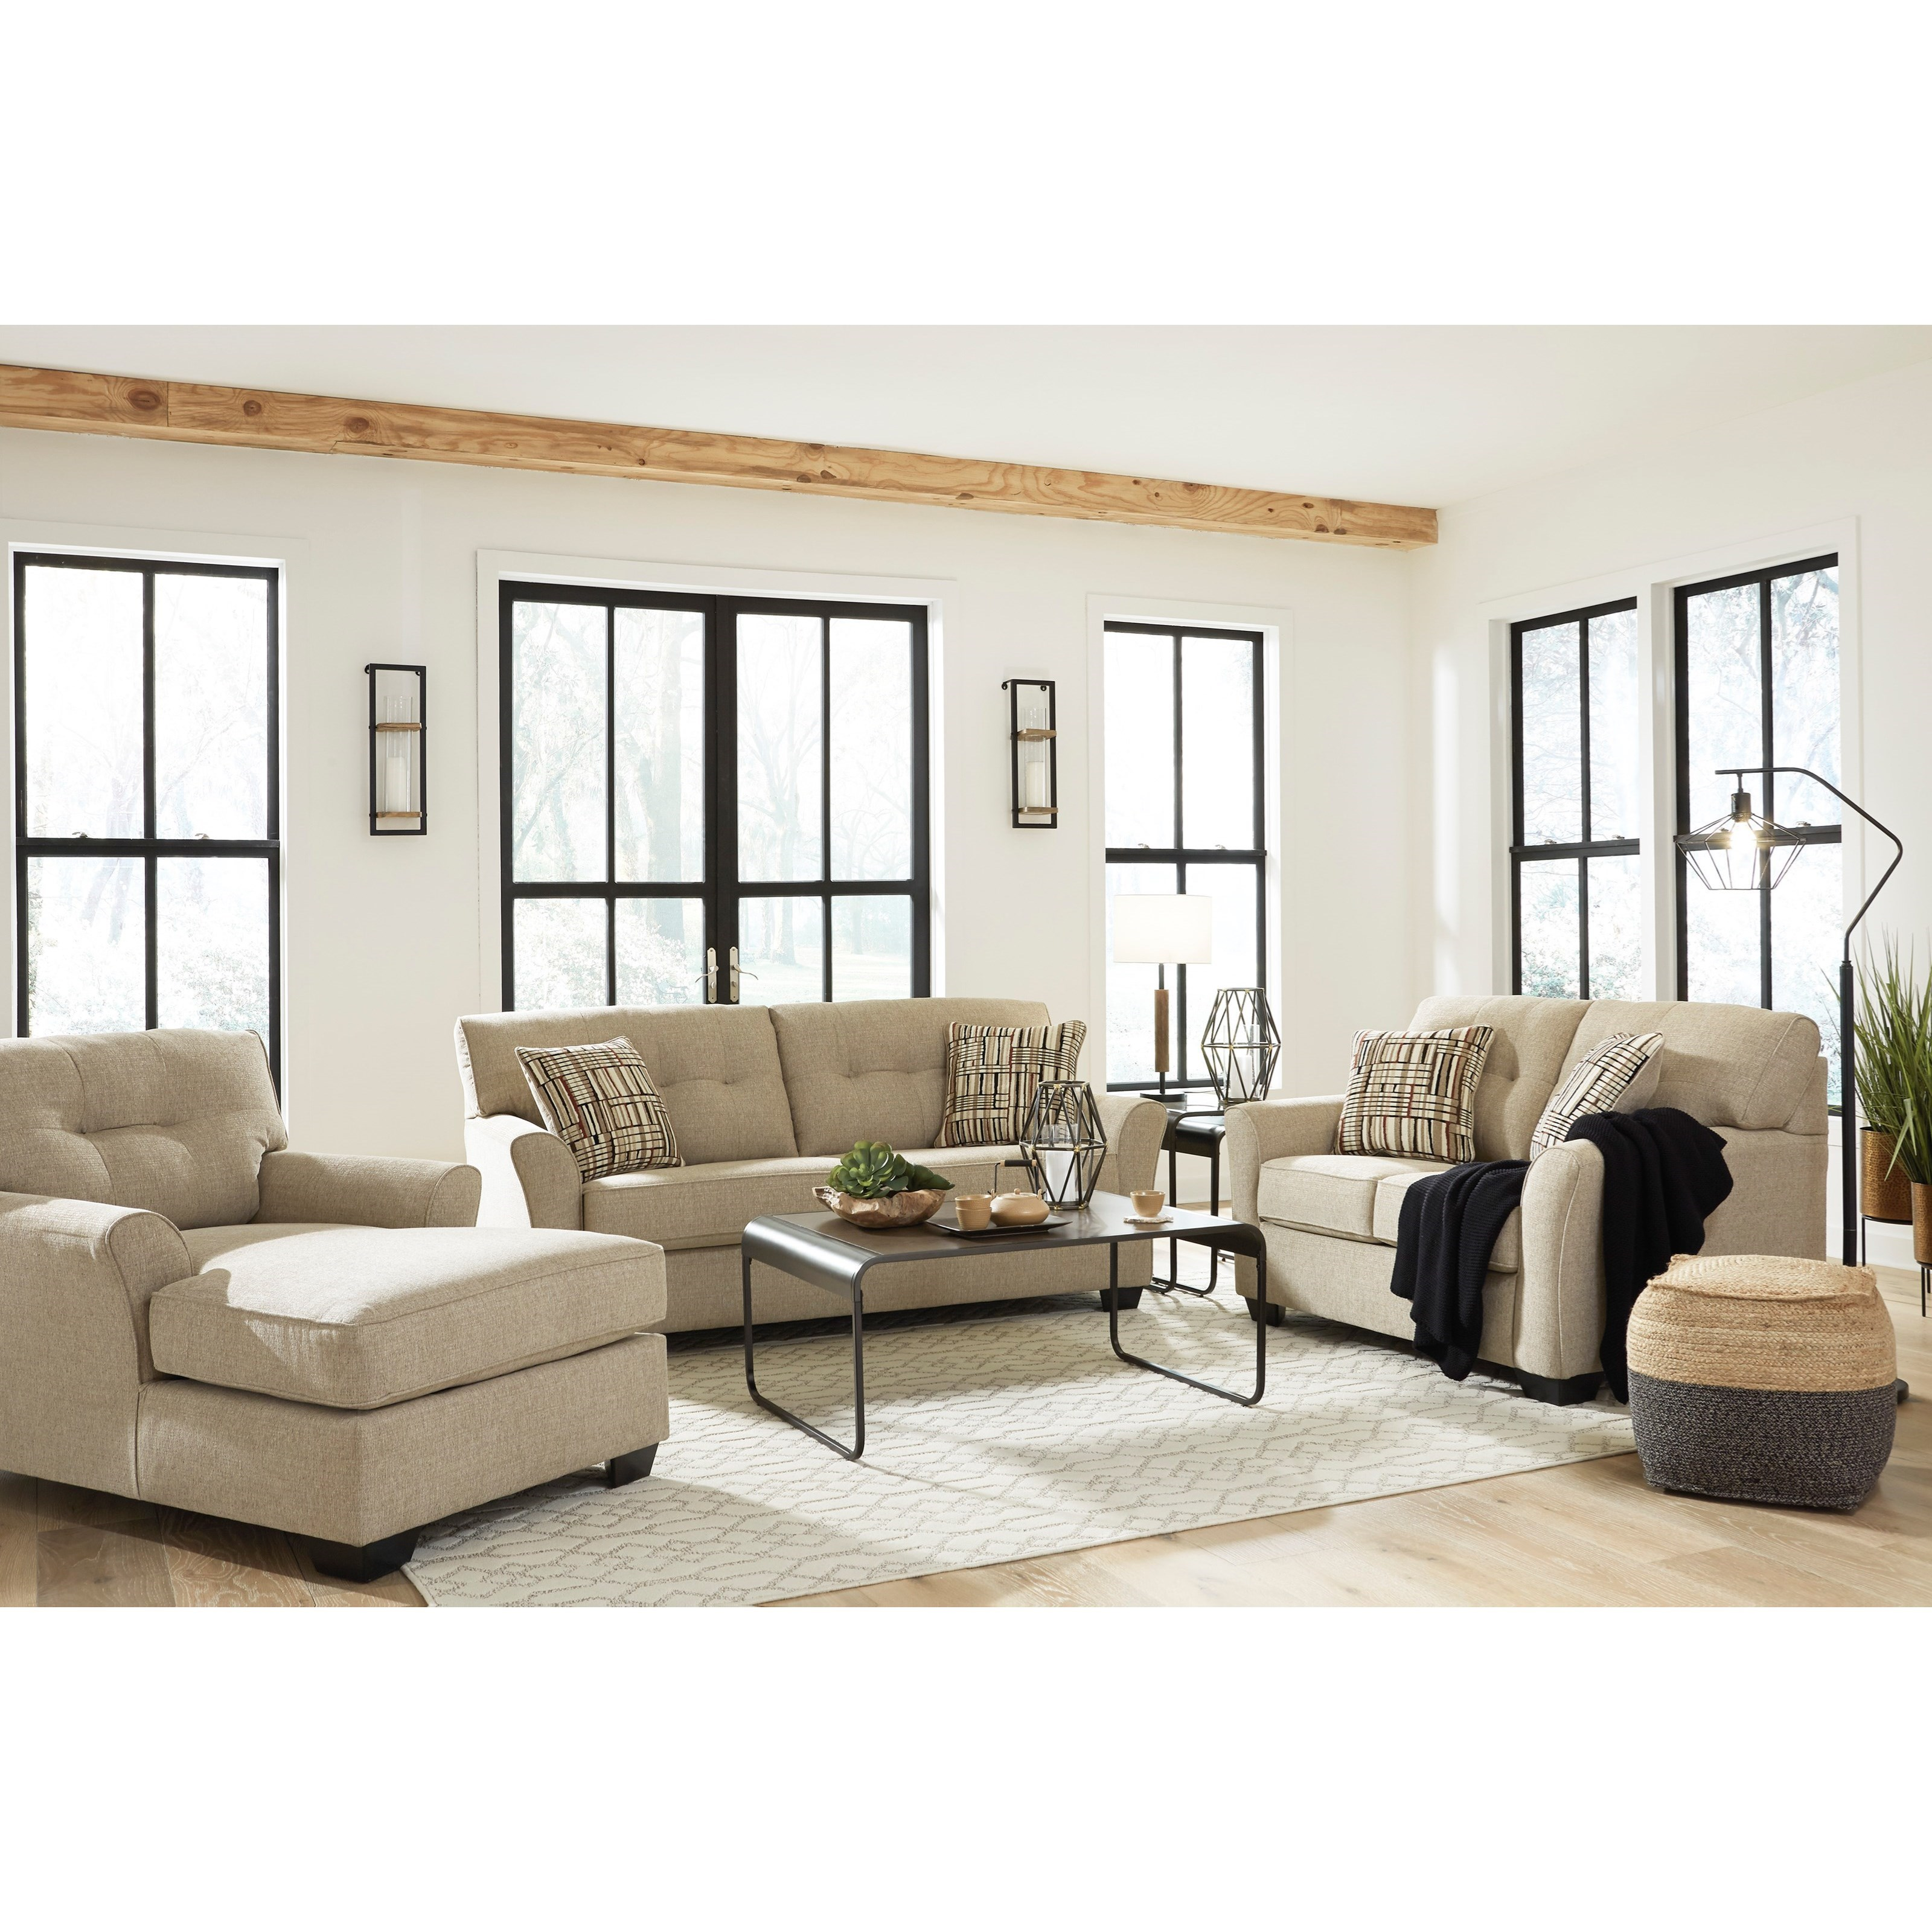 Ardmead Living Room Group by Benchcraft at Simply Home by Lindy's